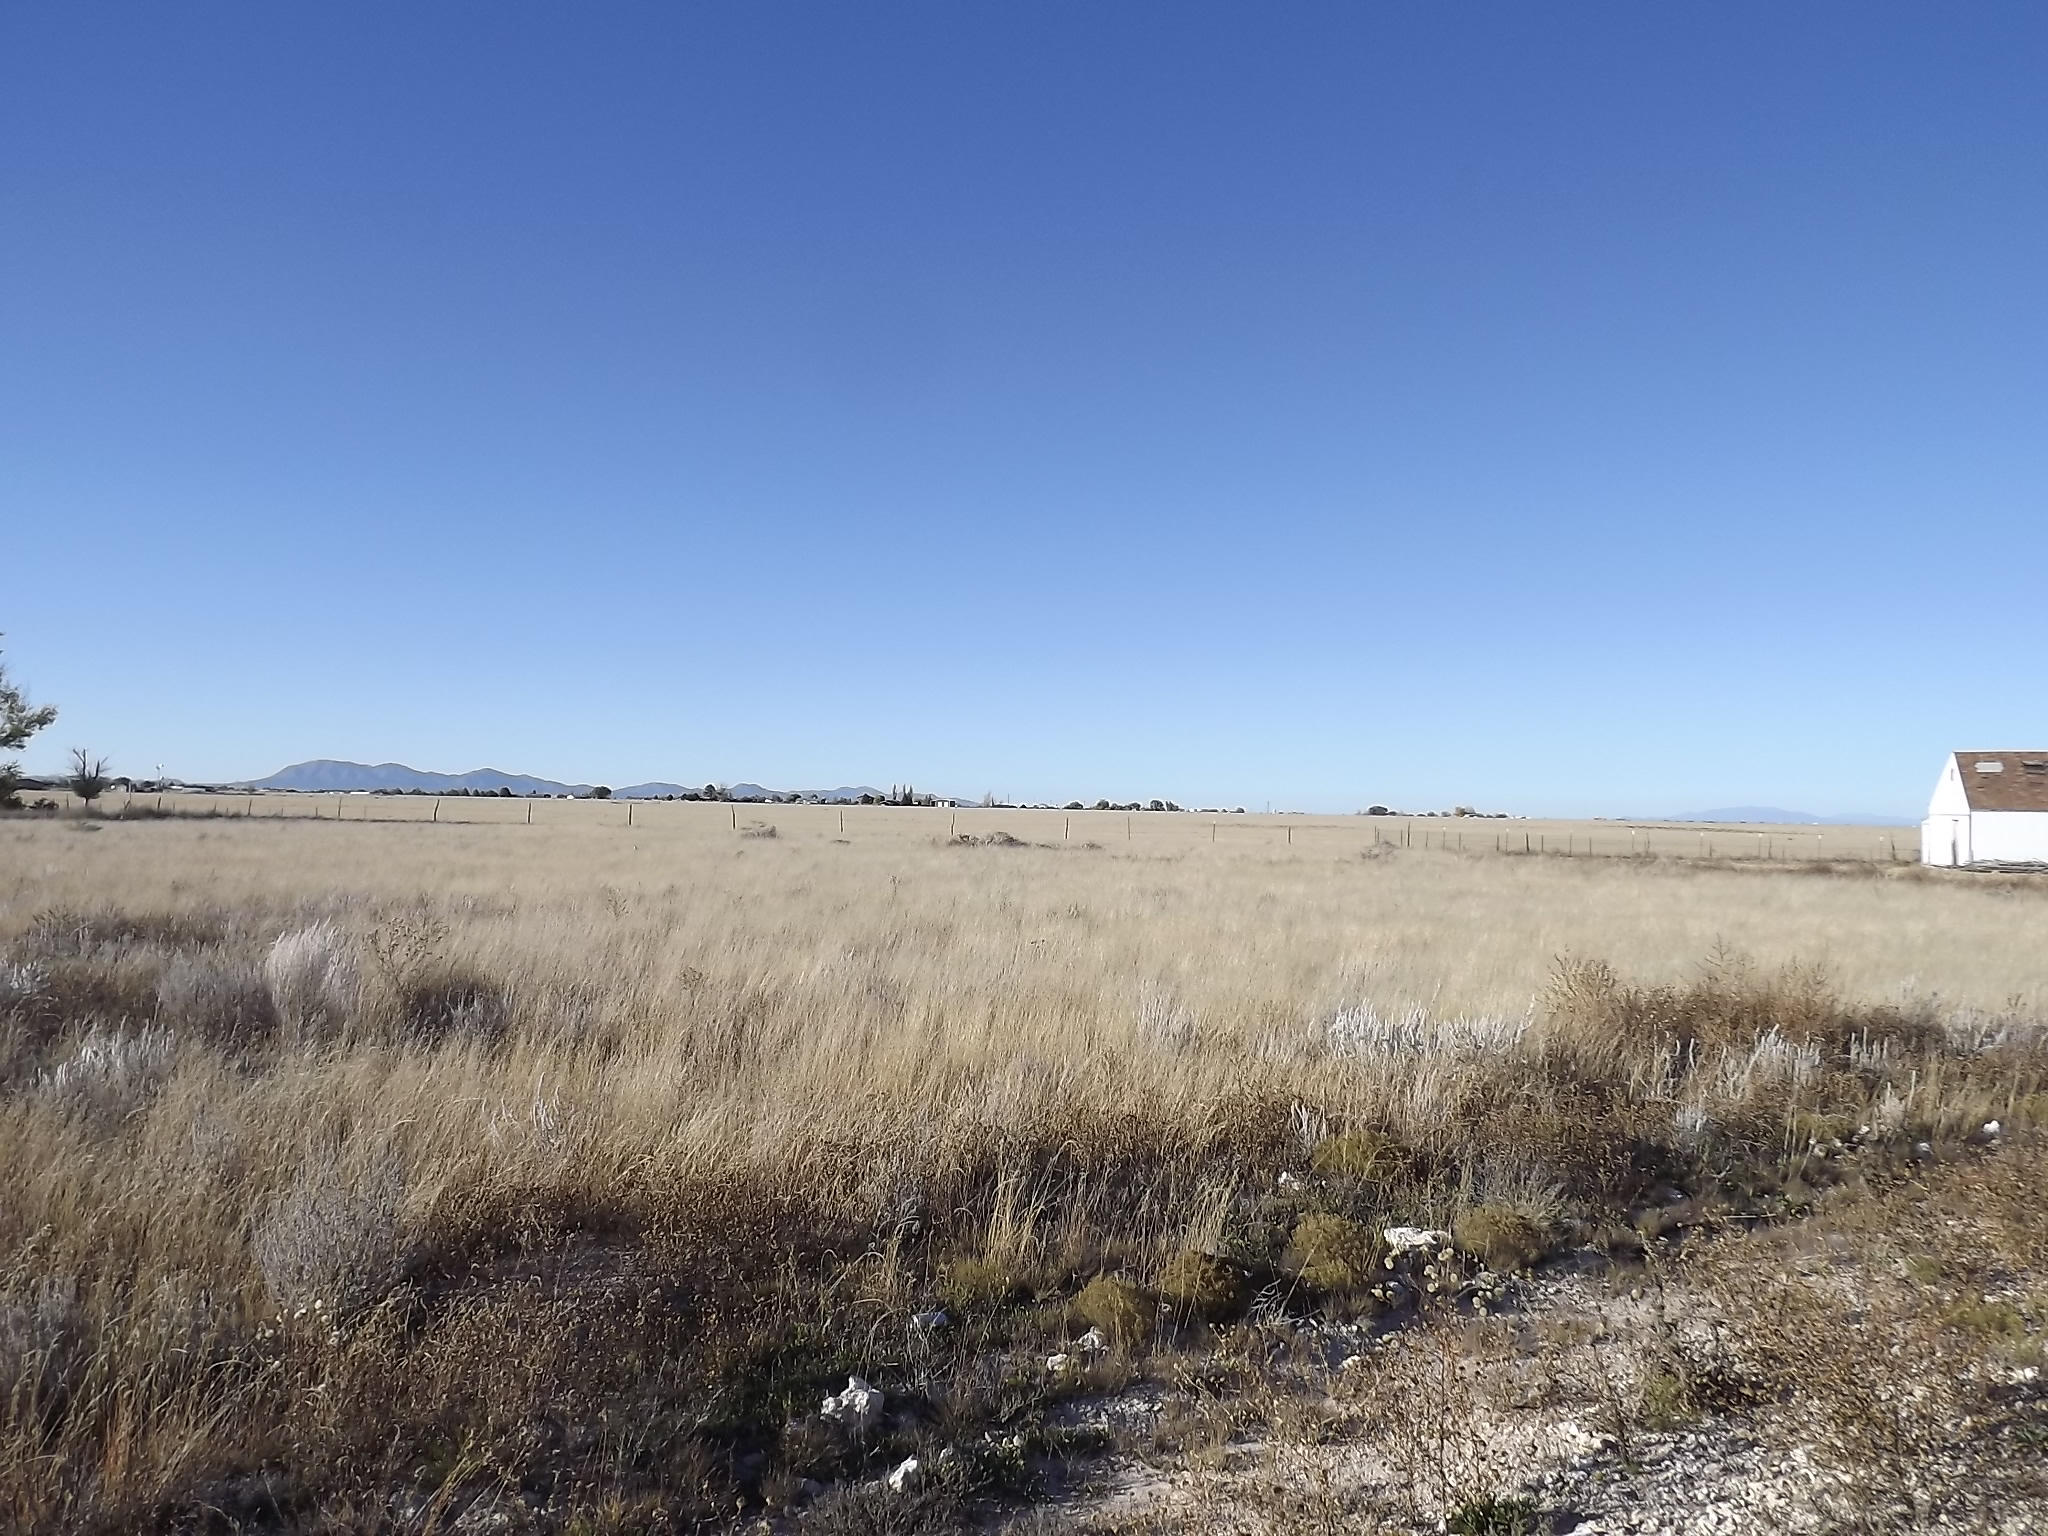 Ohio Court, Moriarty, NM 87035 - Moriarty, NM real estate listing